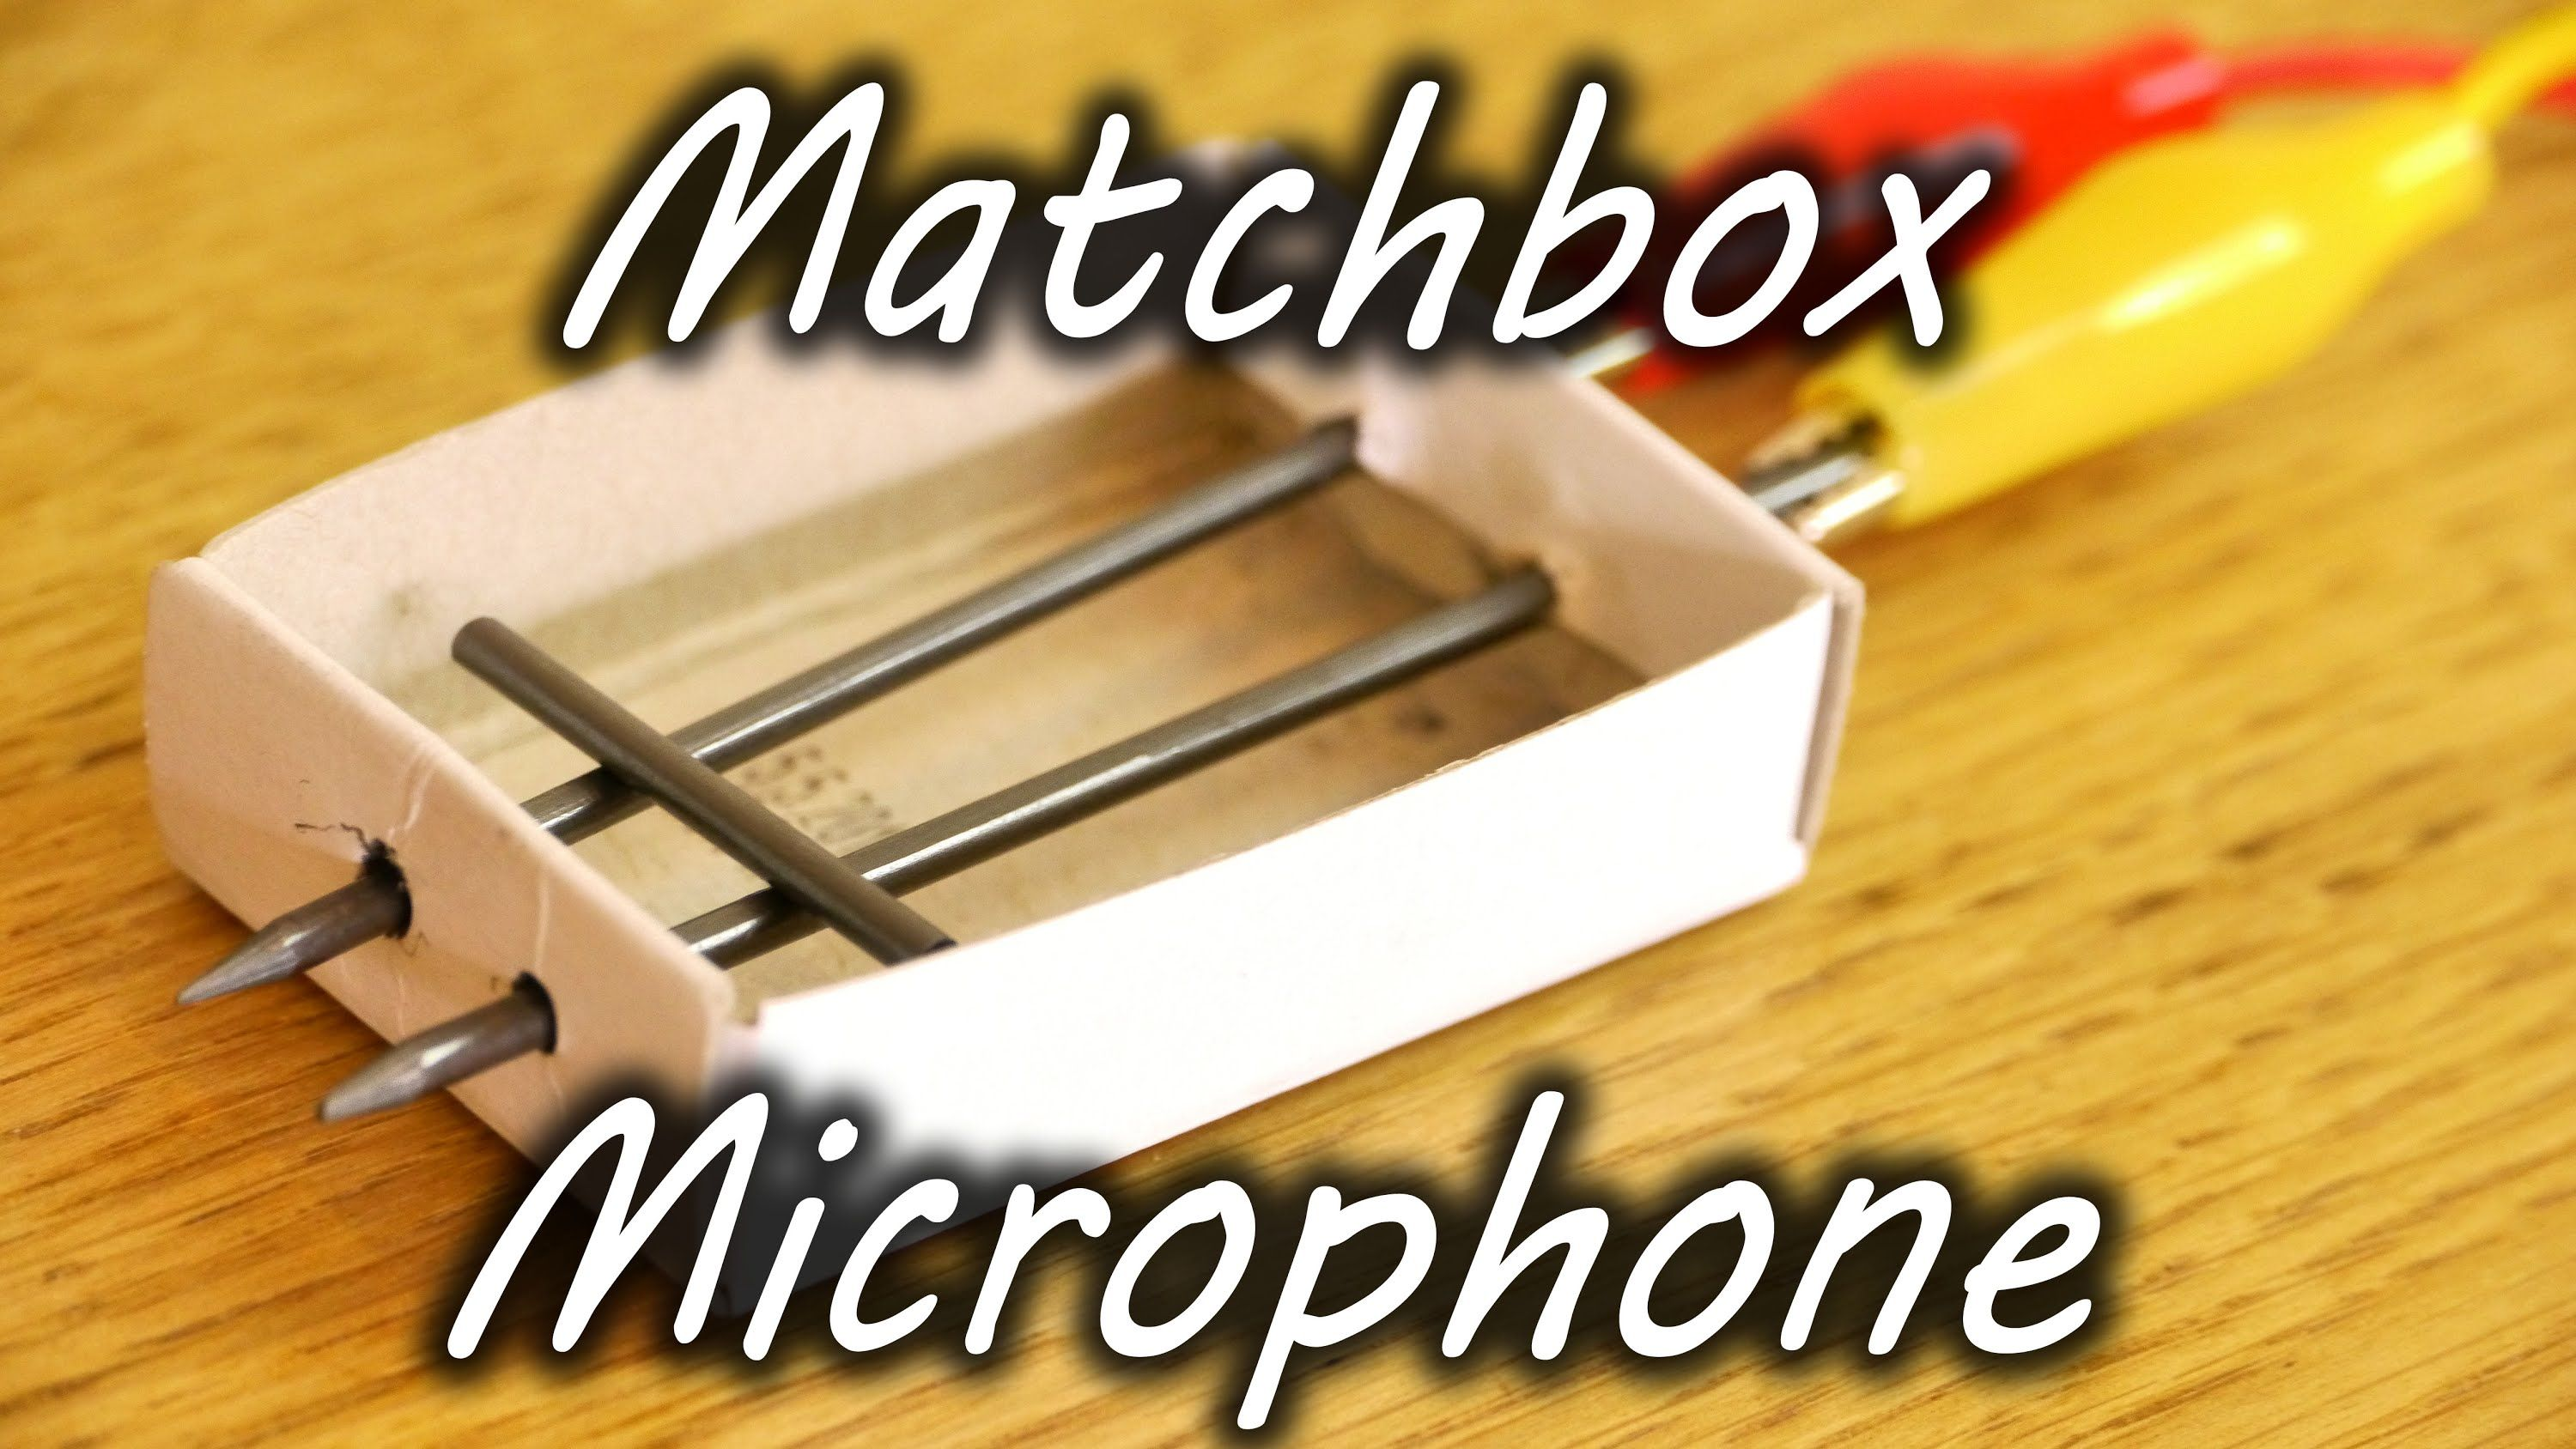 Make a microphone out of a matchbox and pencil leads. Listen to sounds and music from the other side of the house using this DIY microphone. Simple audio ele...